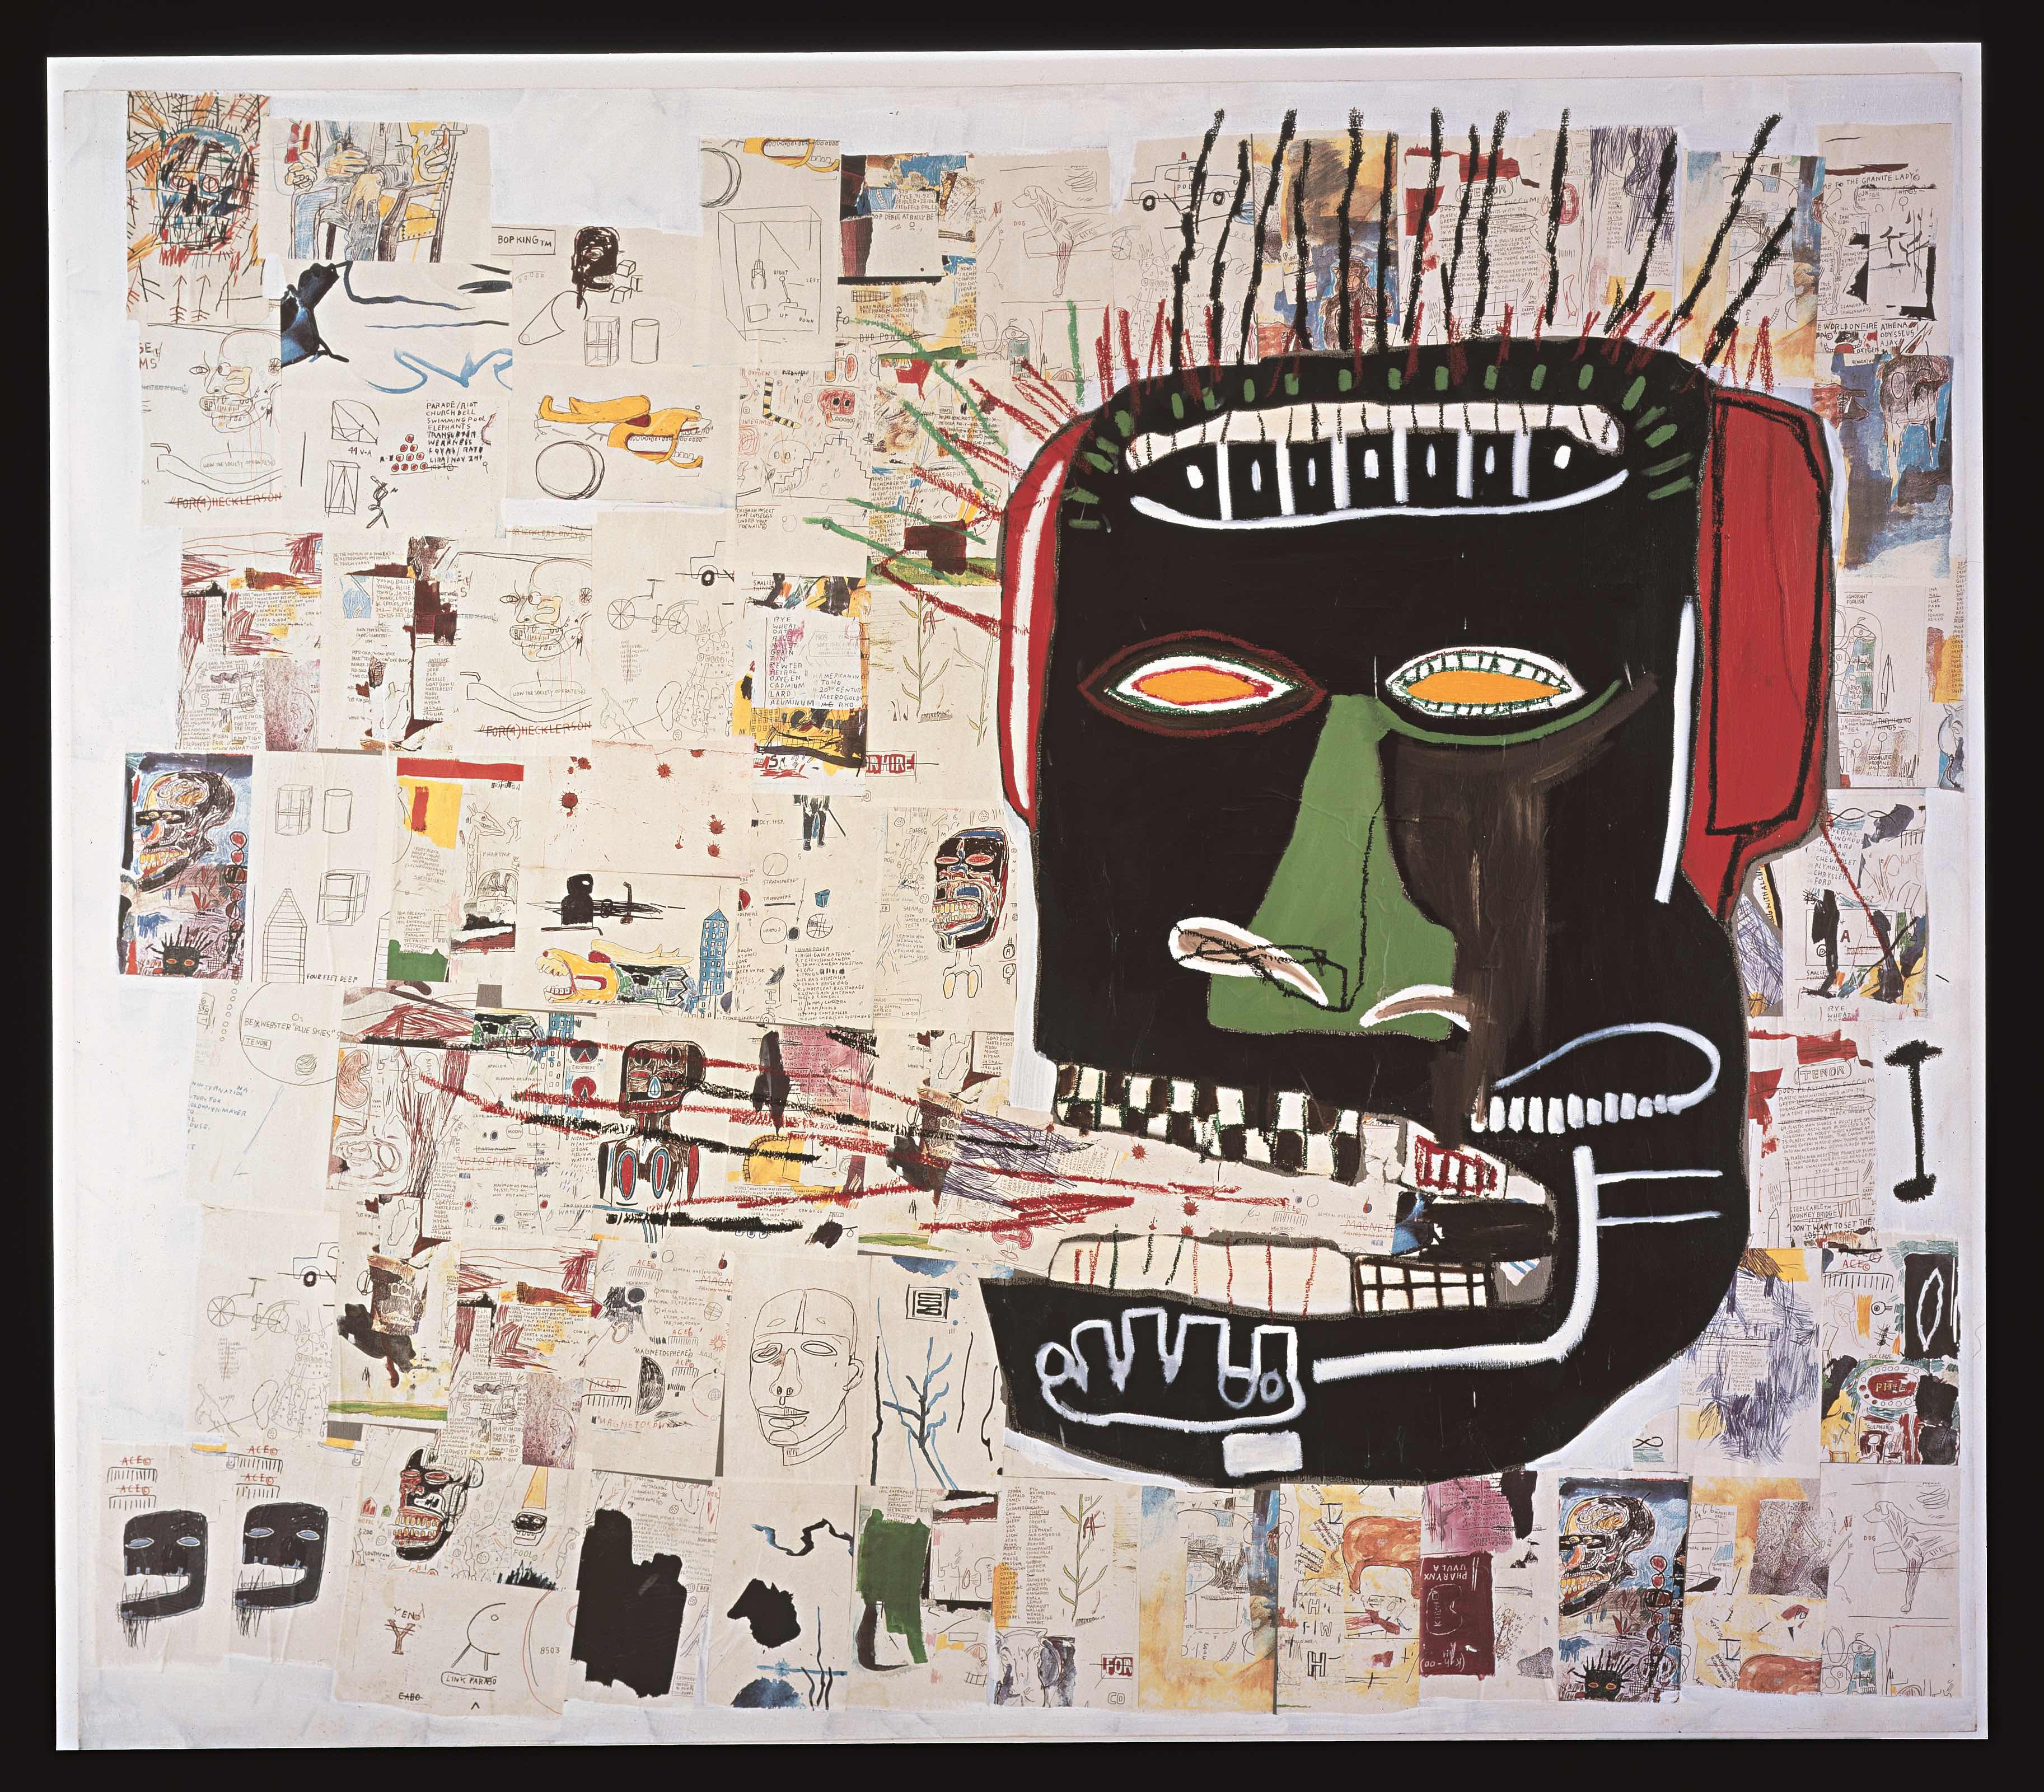 Jean-Michel Basquiat Glenn, 1984 Private collection. © The Estate of Jean-Michel Basquiat. Licensed by Artestar, New York.